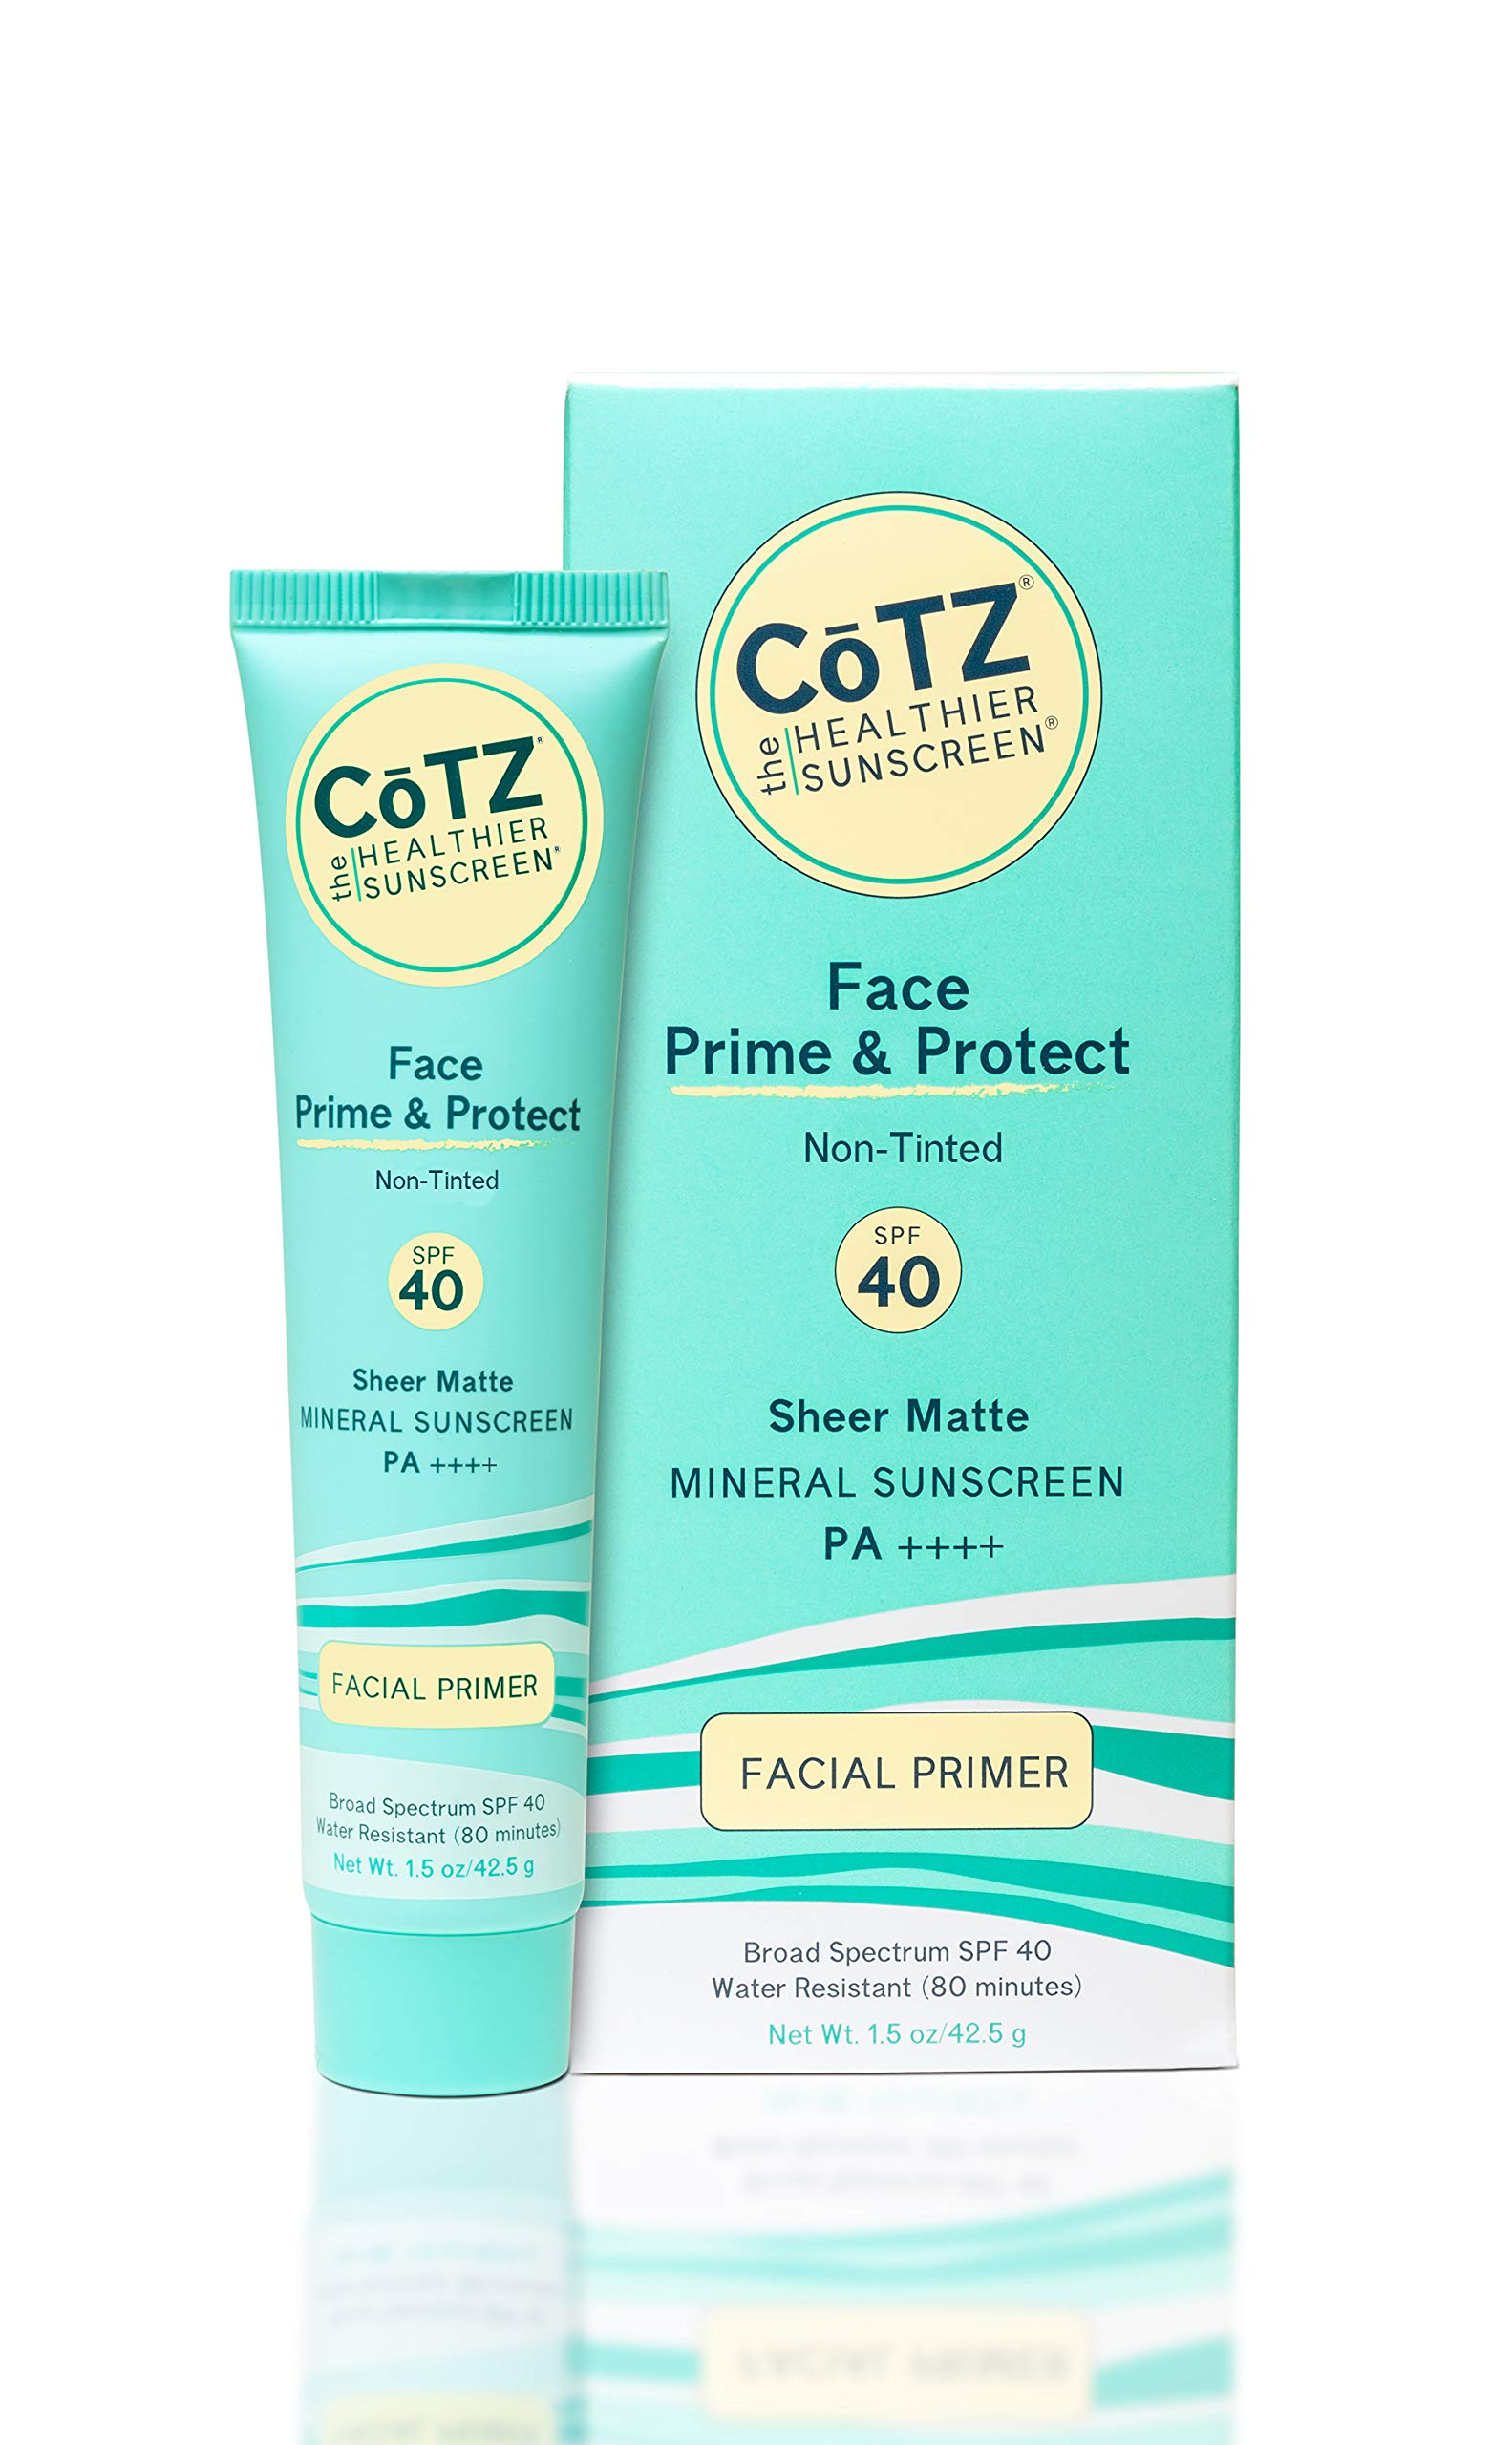 COTZ Face Prime & Protect Non-Tinted Mineral Sunscreen and Facial Primer Broad Spectrum SPF 40; PA++++ 1.5 oz / 42.5 g.